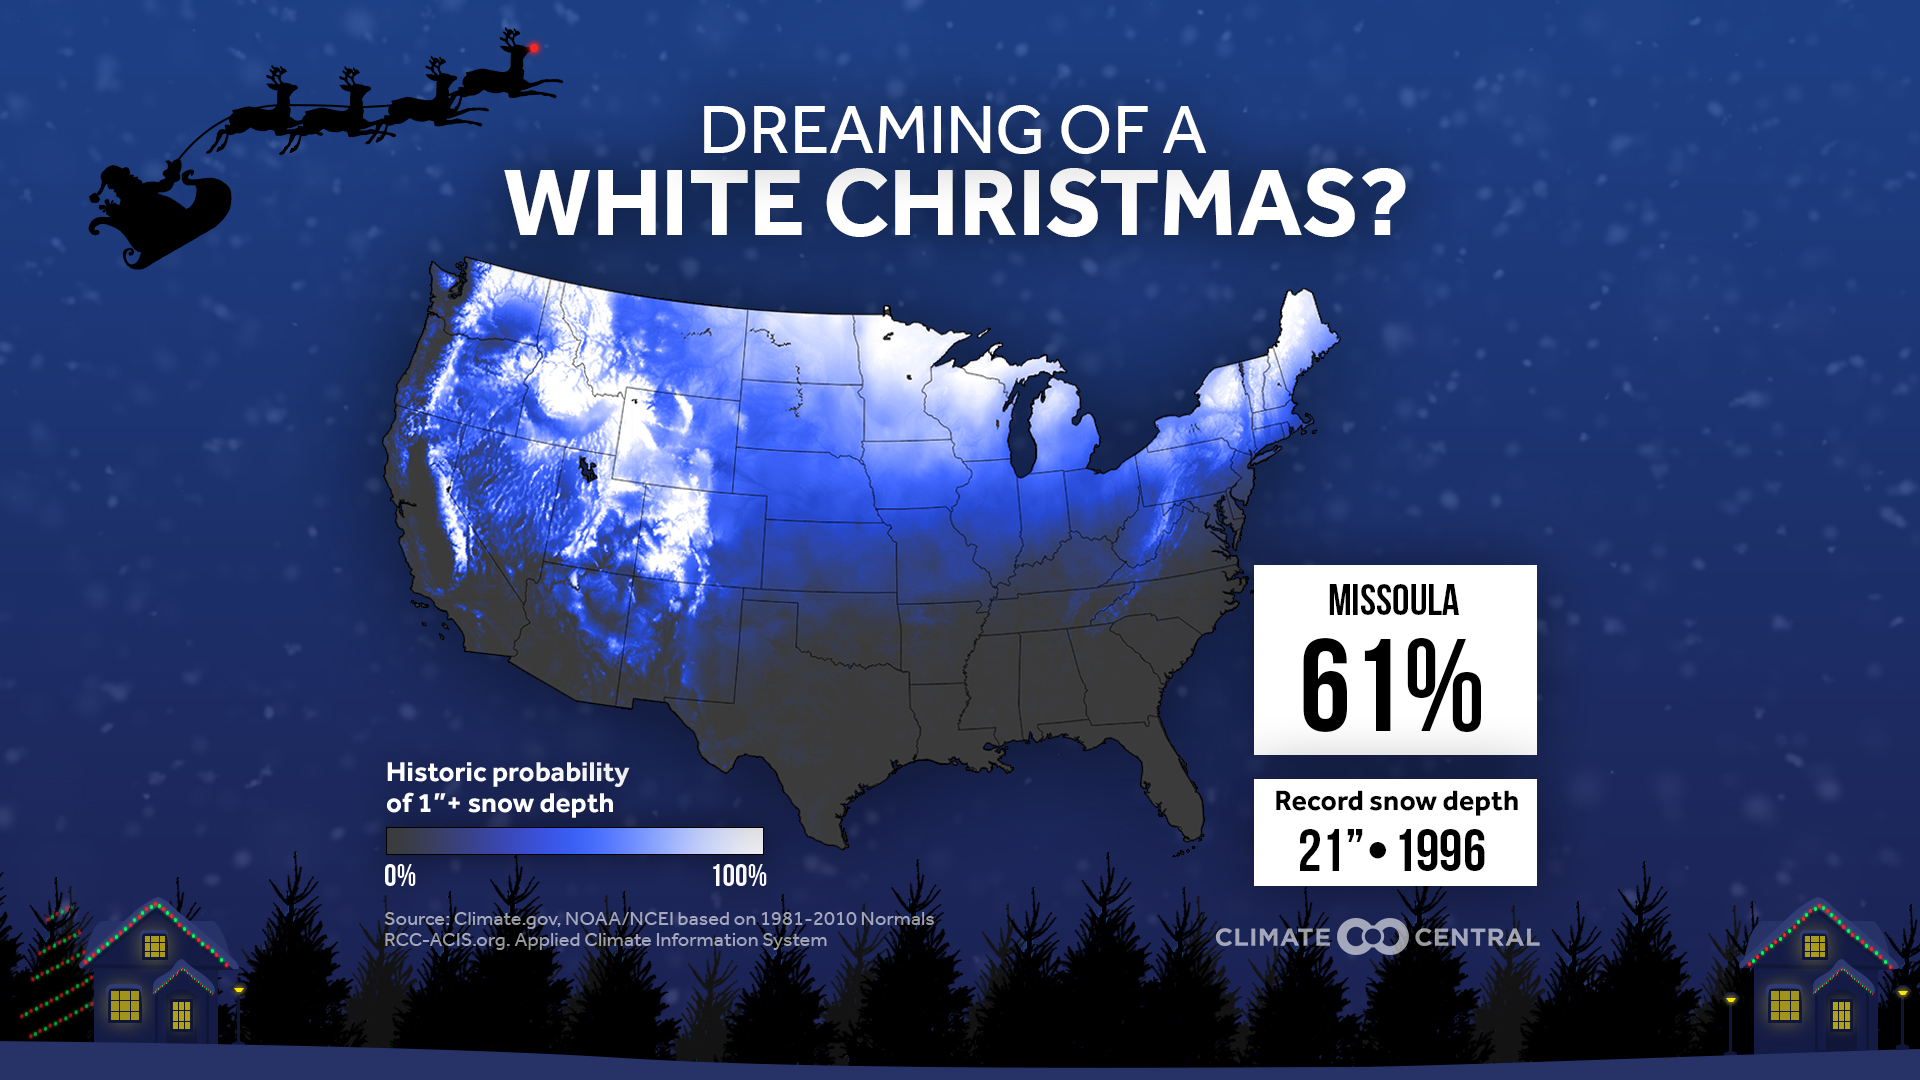 Chance of snow on Christmas in Missoula, Montana